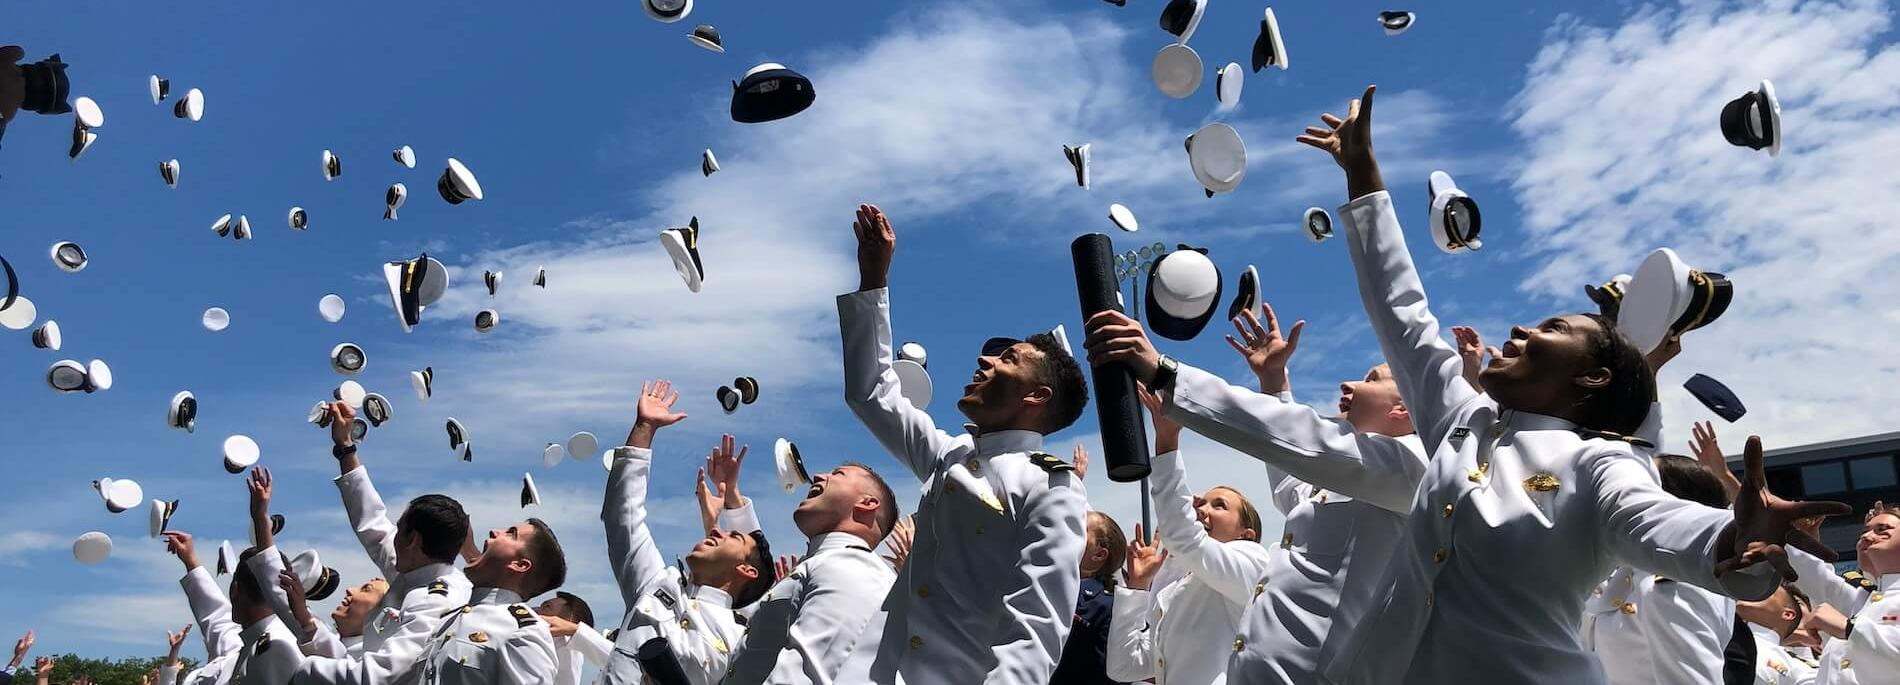 Cadets tossing hats